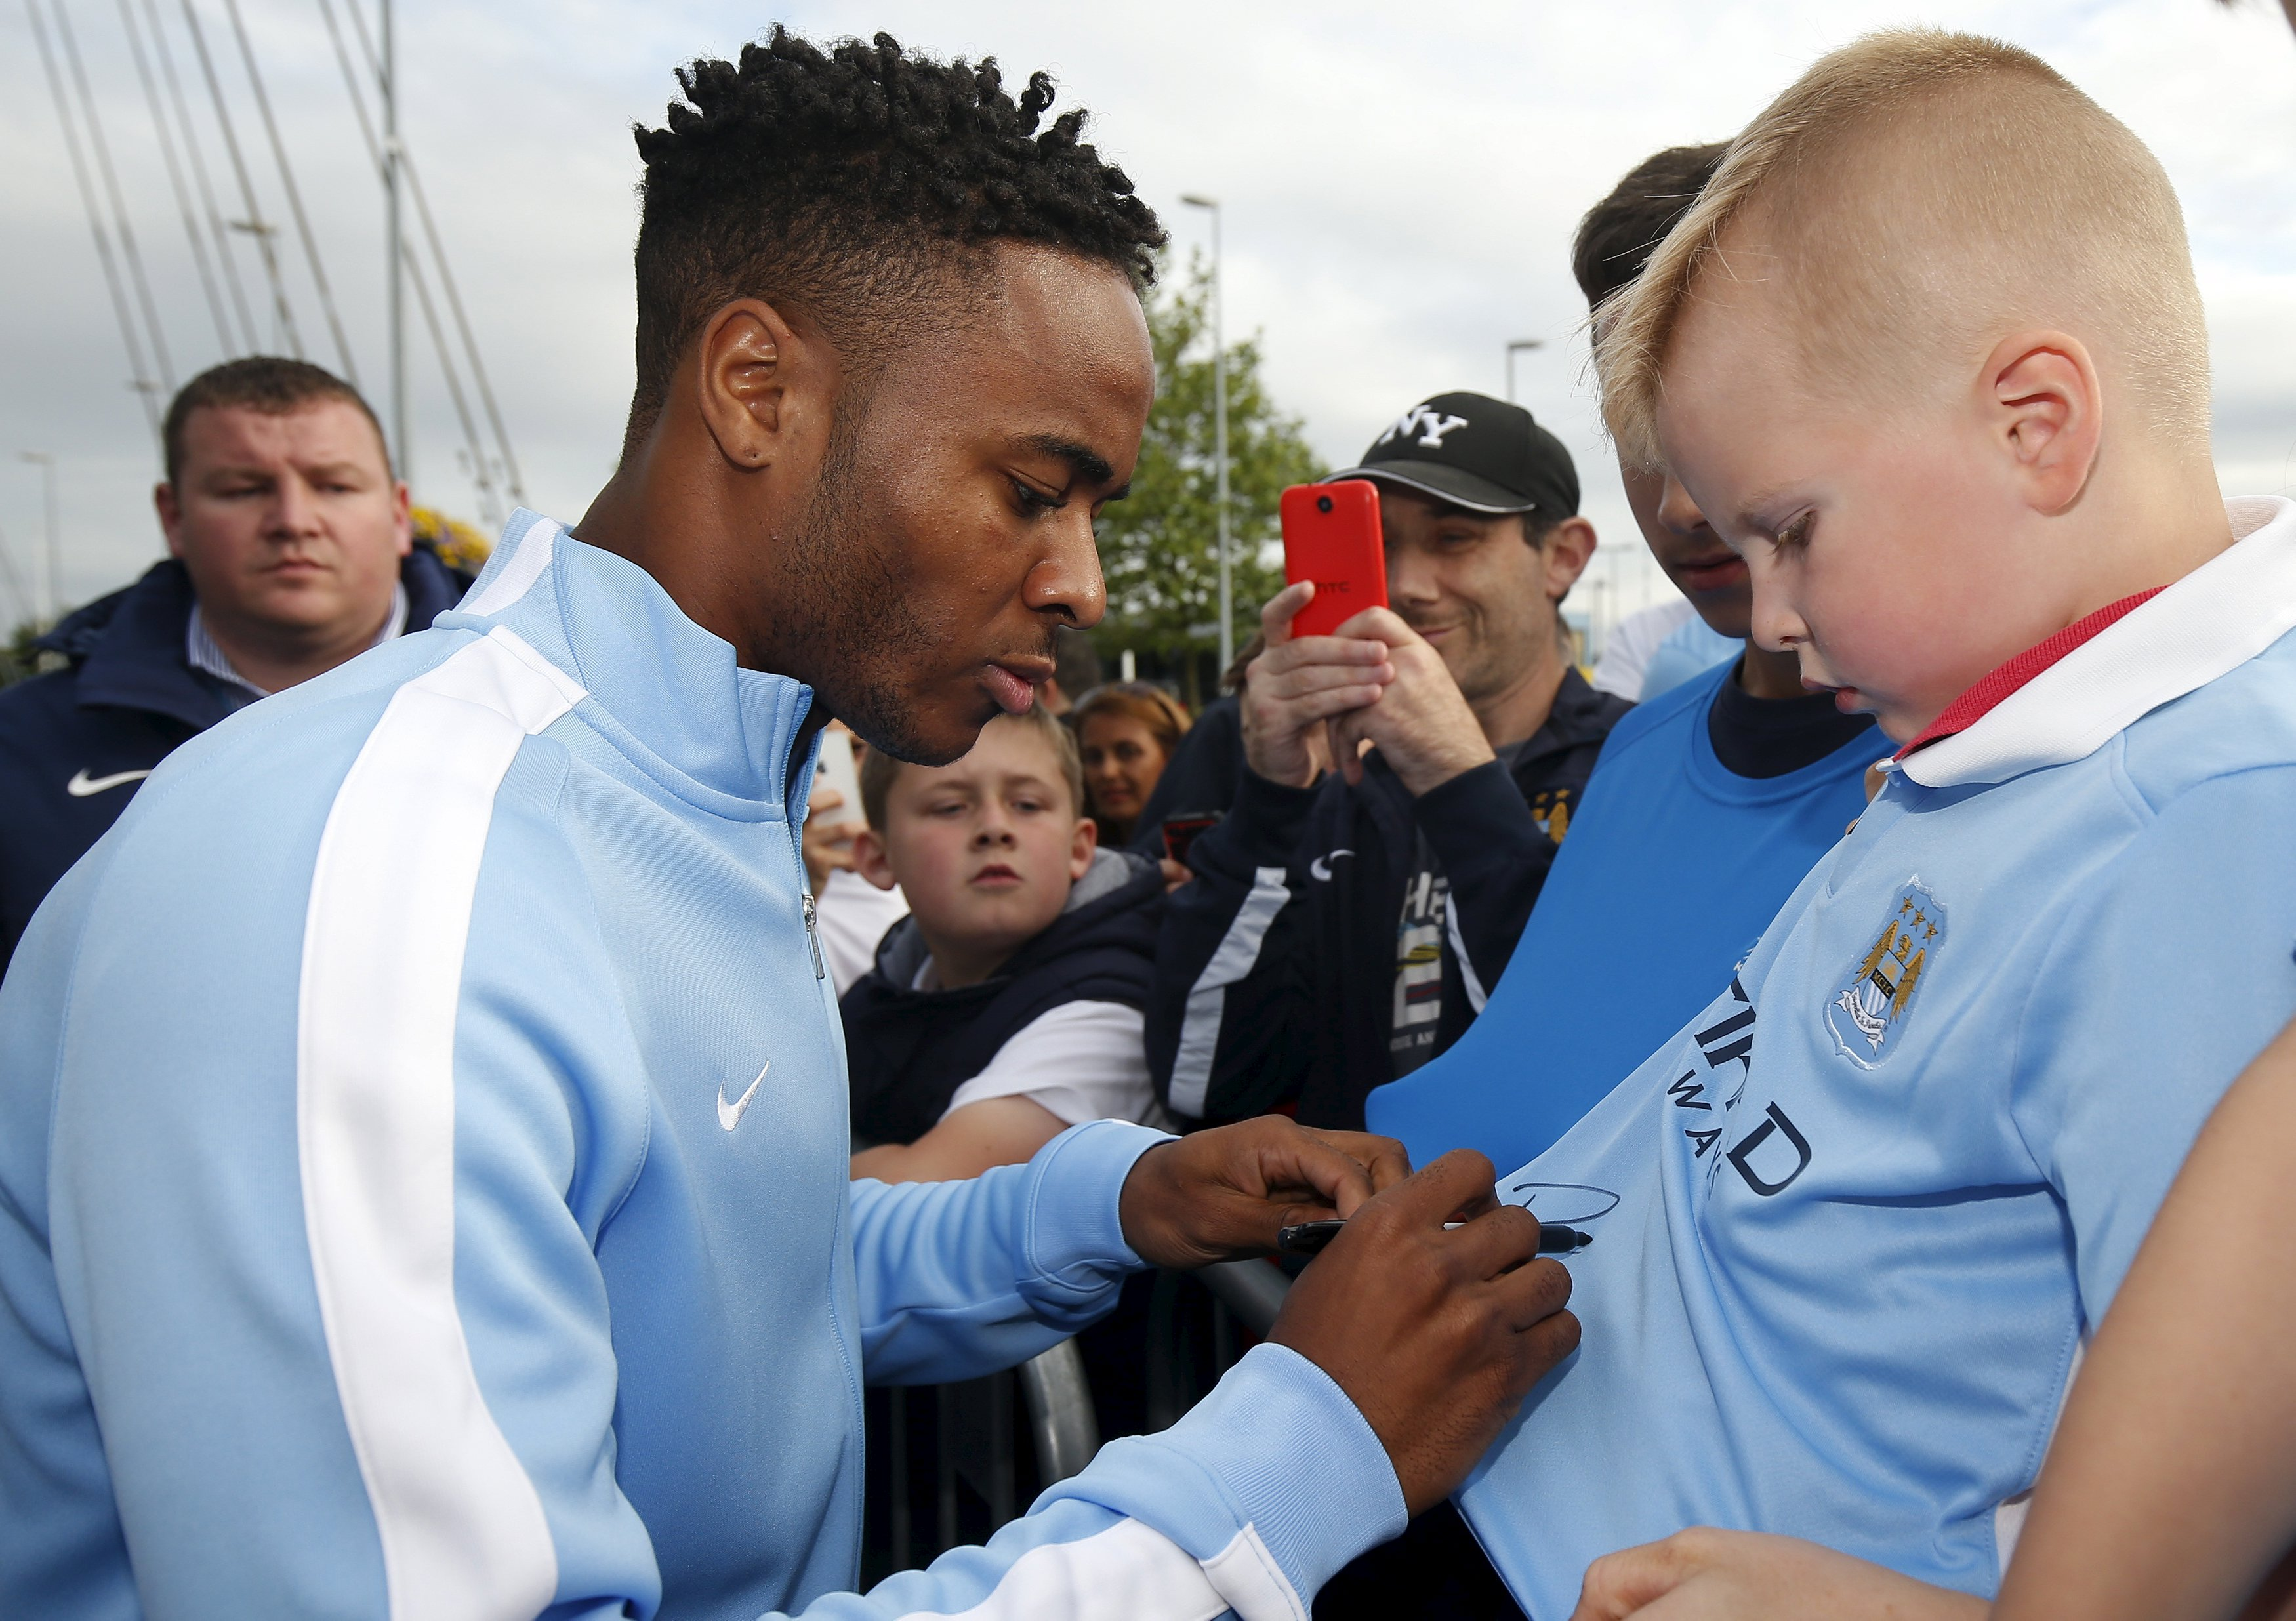 Manchester Cityu2019s new player Raheem Sterling signing autographs for supporters as he leaves the club's Etihad Stadium in Manchester on Wednesday. Photo: Reuters